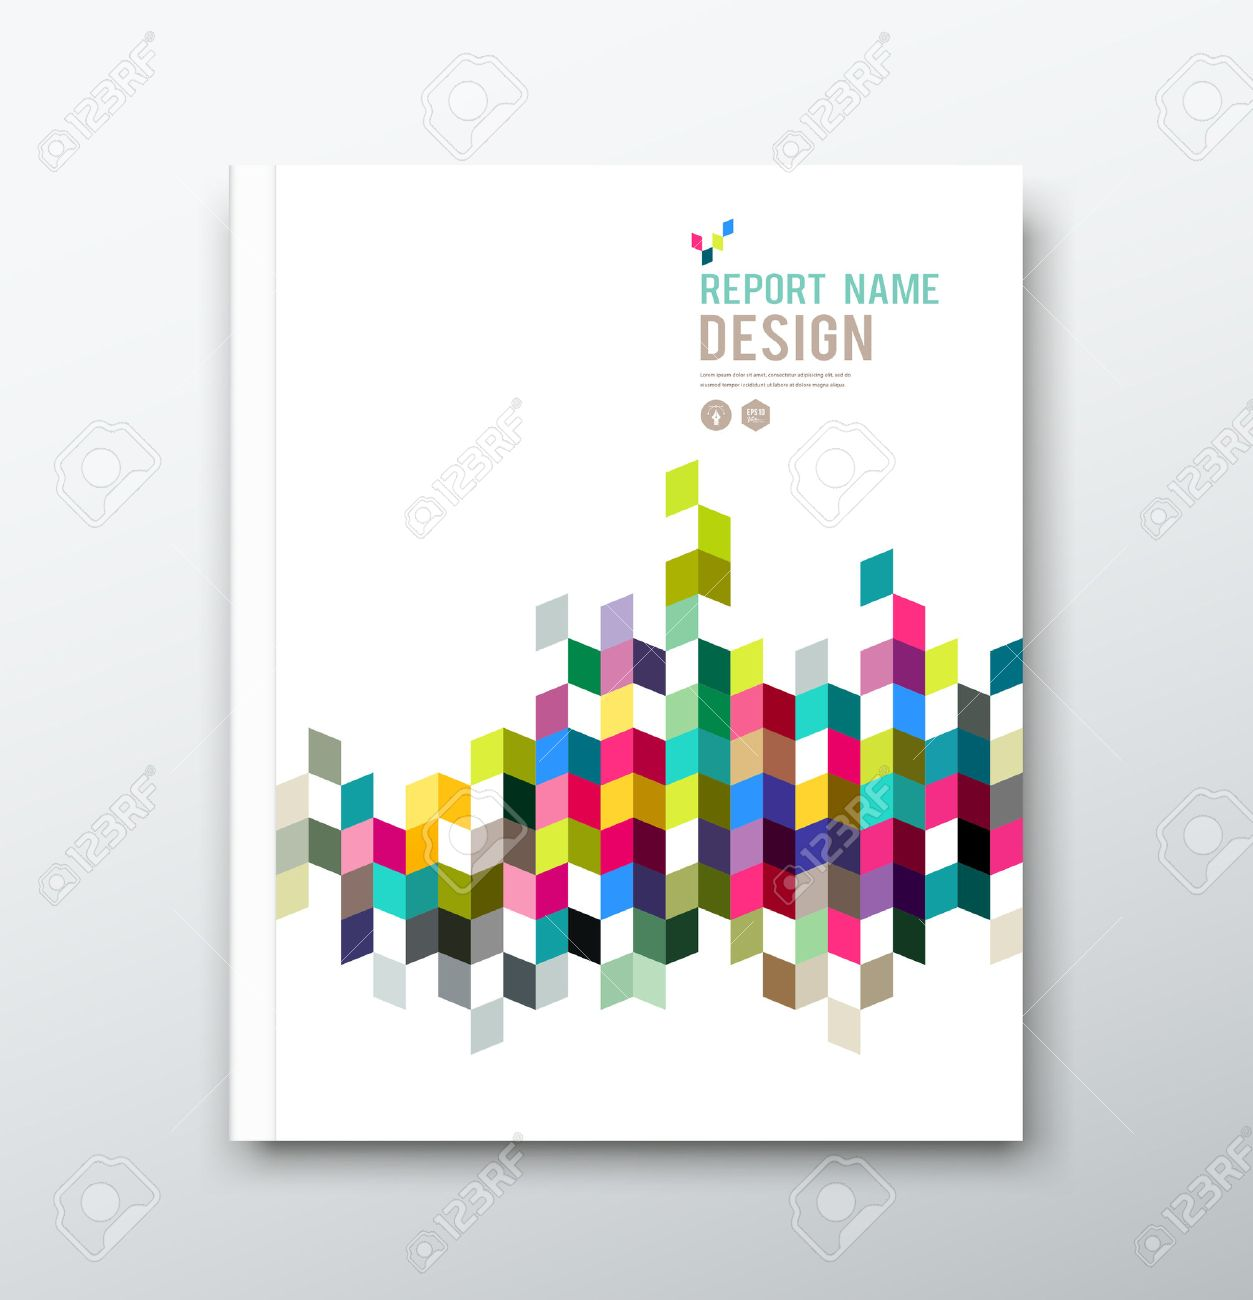 cover annual report and brochure colorful geometric design cover annual report and brochure colorful geometric design background stock vector 27888250